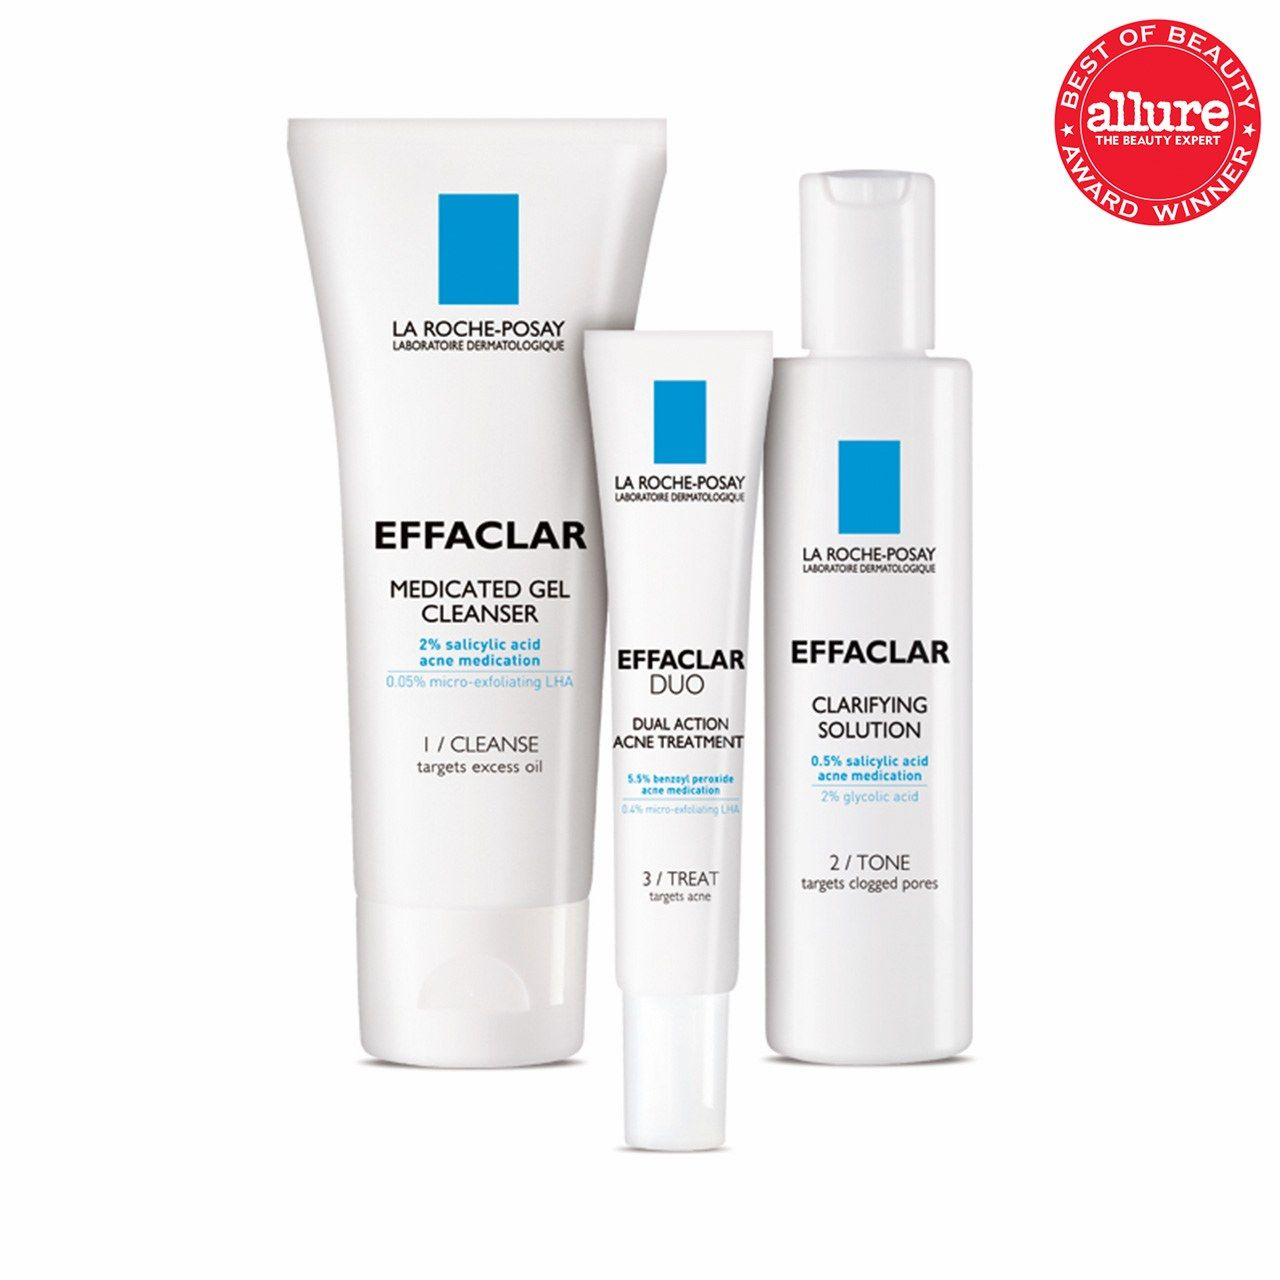 These Are Allure S Best Of Beauty 2016 Winners Skin Cleanser Products Skin Care Gel Cleanser